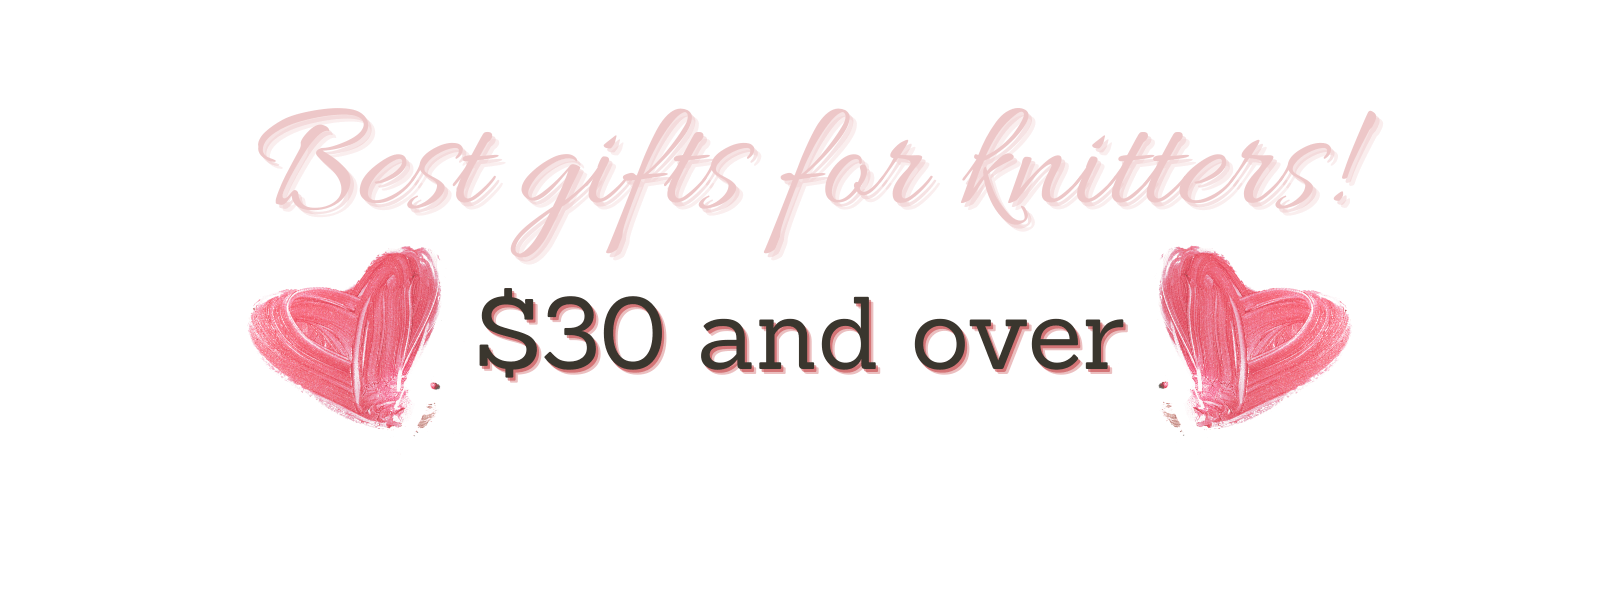 Gifts for knitters over $30